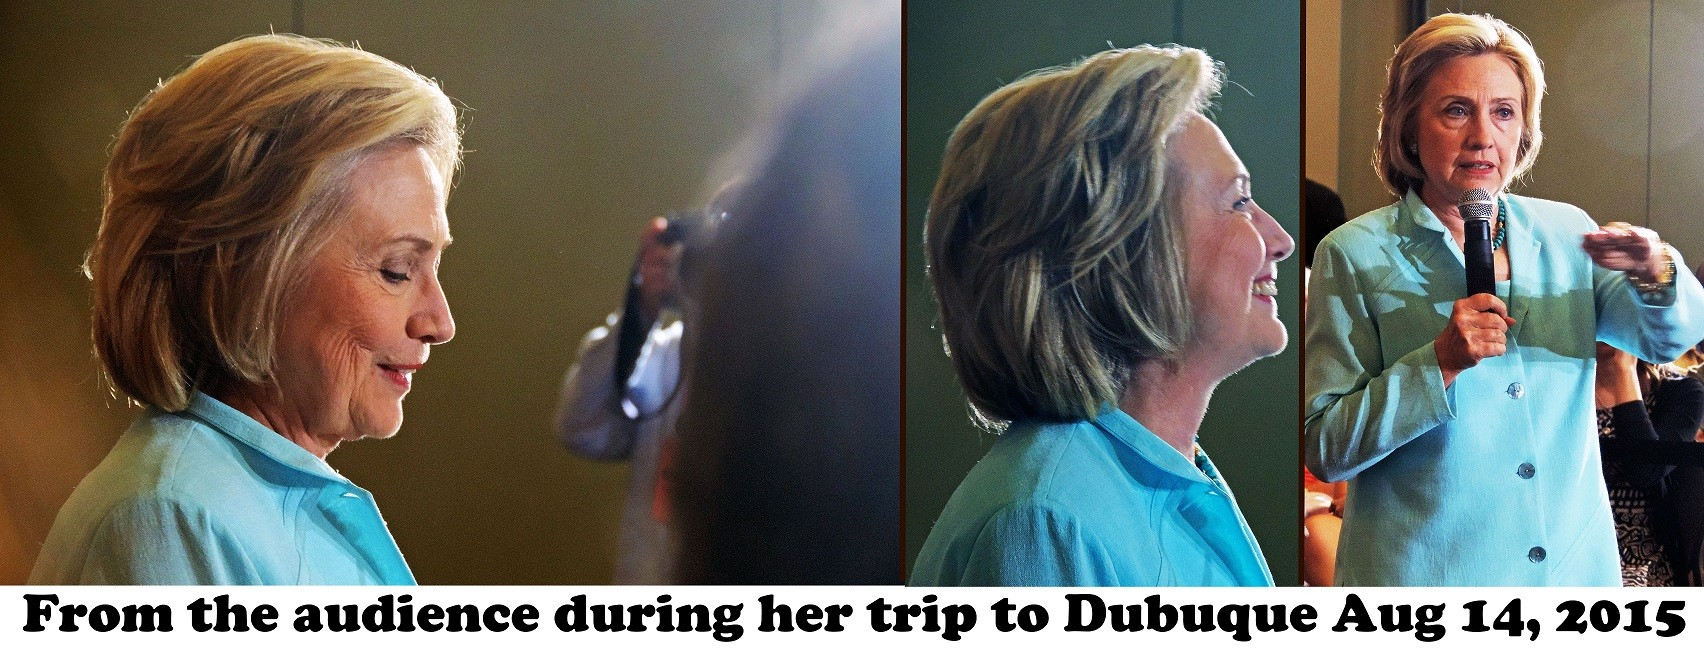 Hillary Clinton in Dubuque 8-14-15 reduced